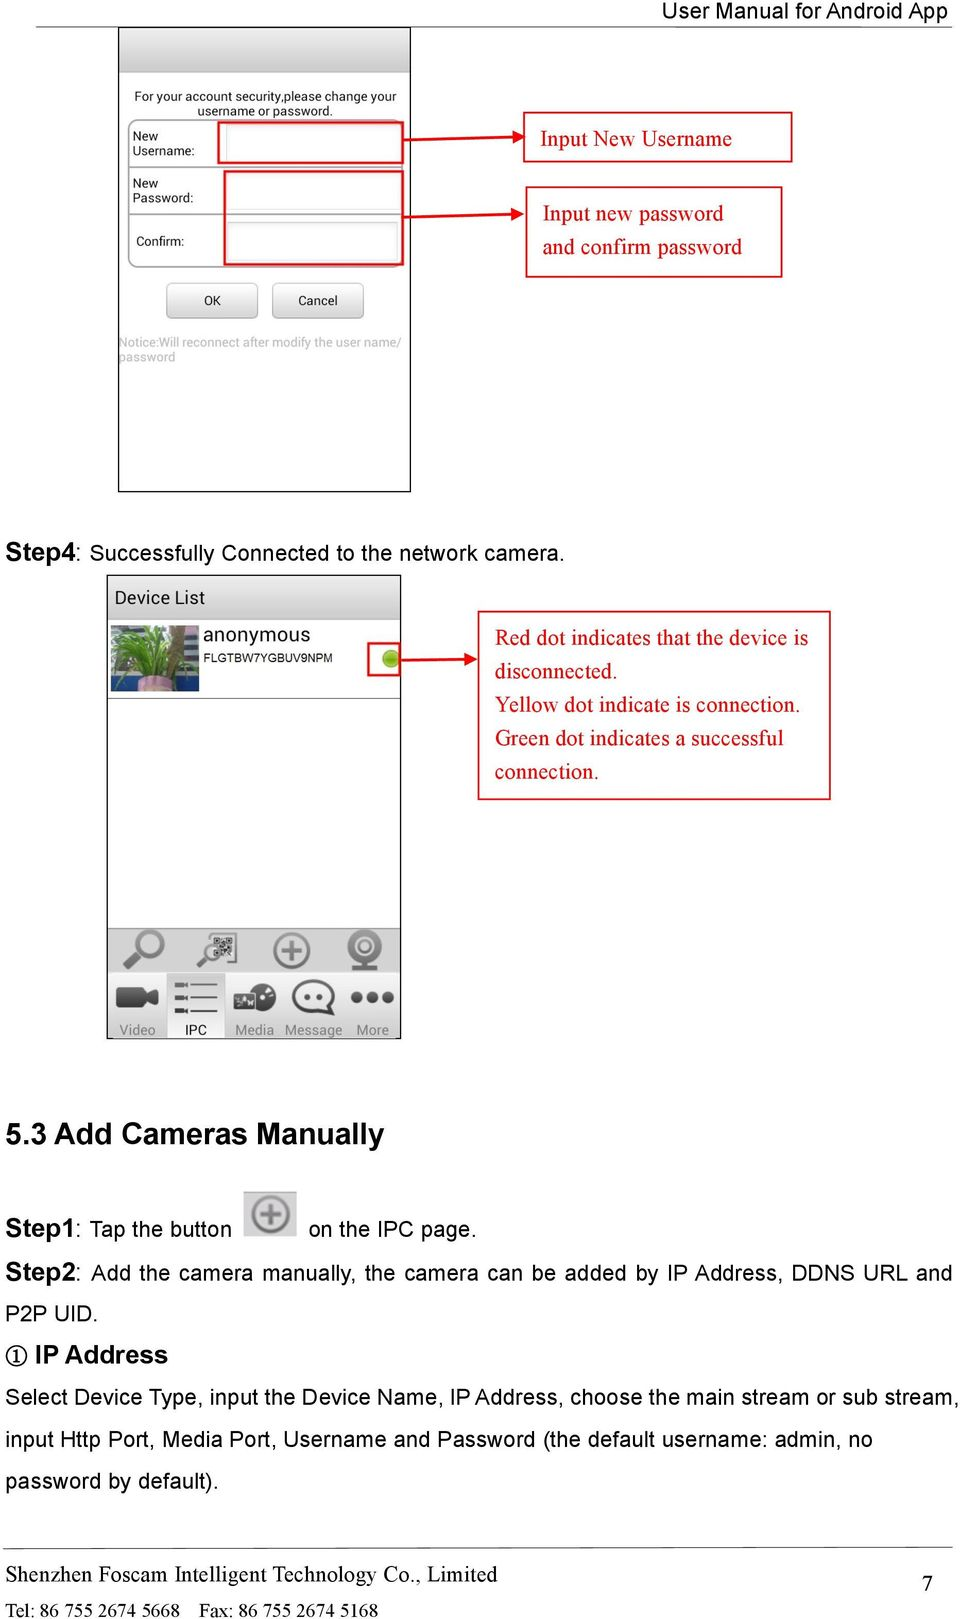 3 Add Cameras Manually Step1: Tap the button on the IPC page. Step2: Add the camera manually, the camera can be added by IP Address, DDNS URL and P2P UID.